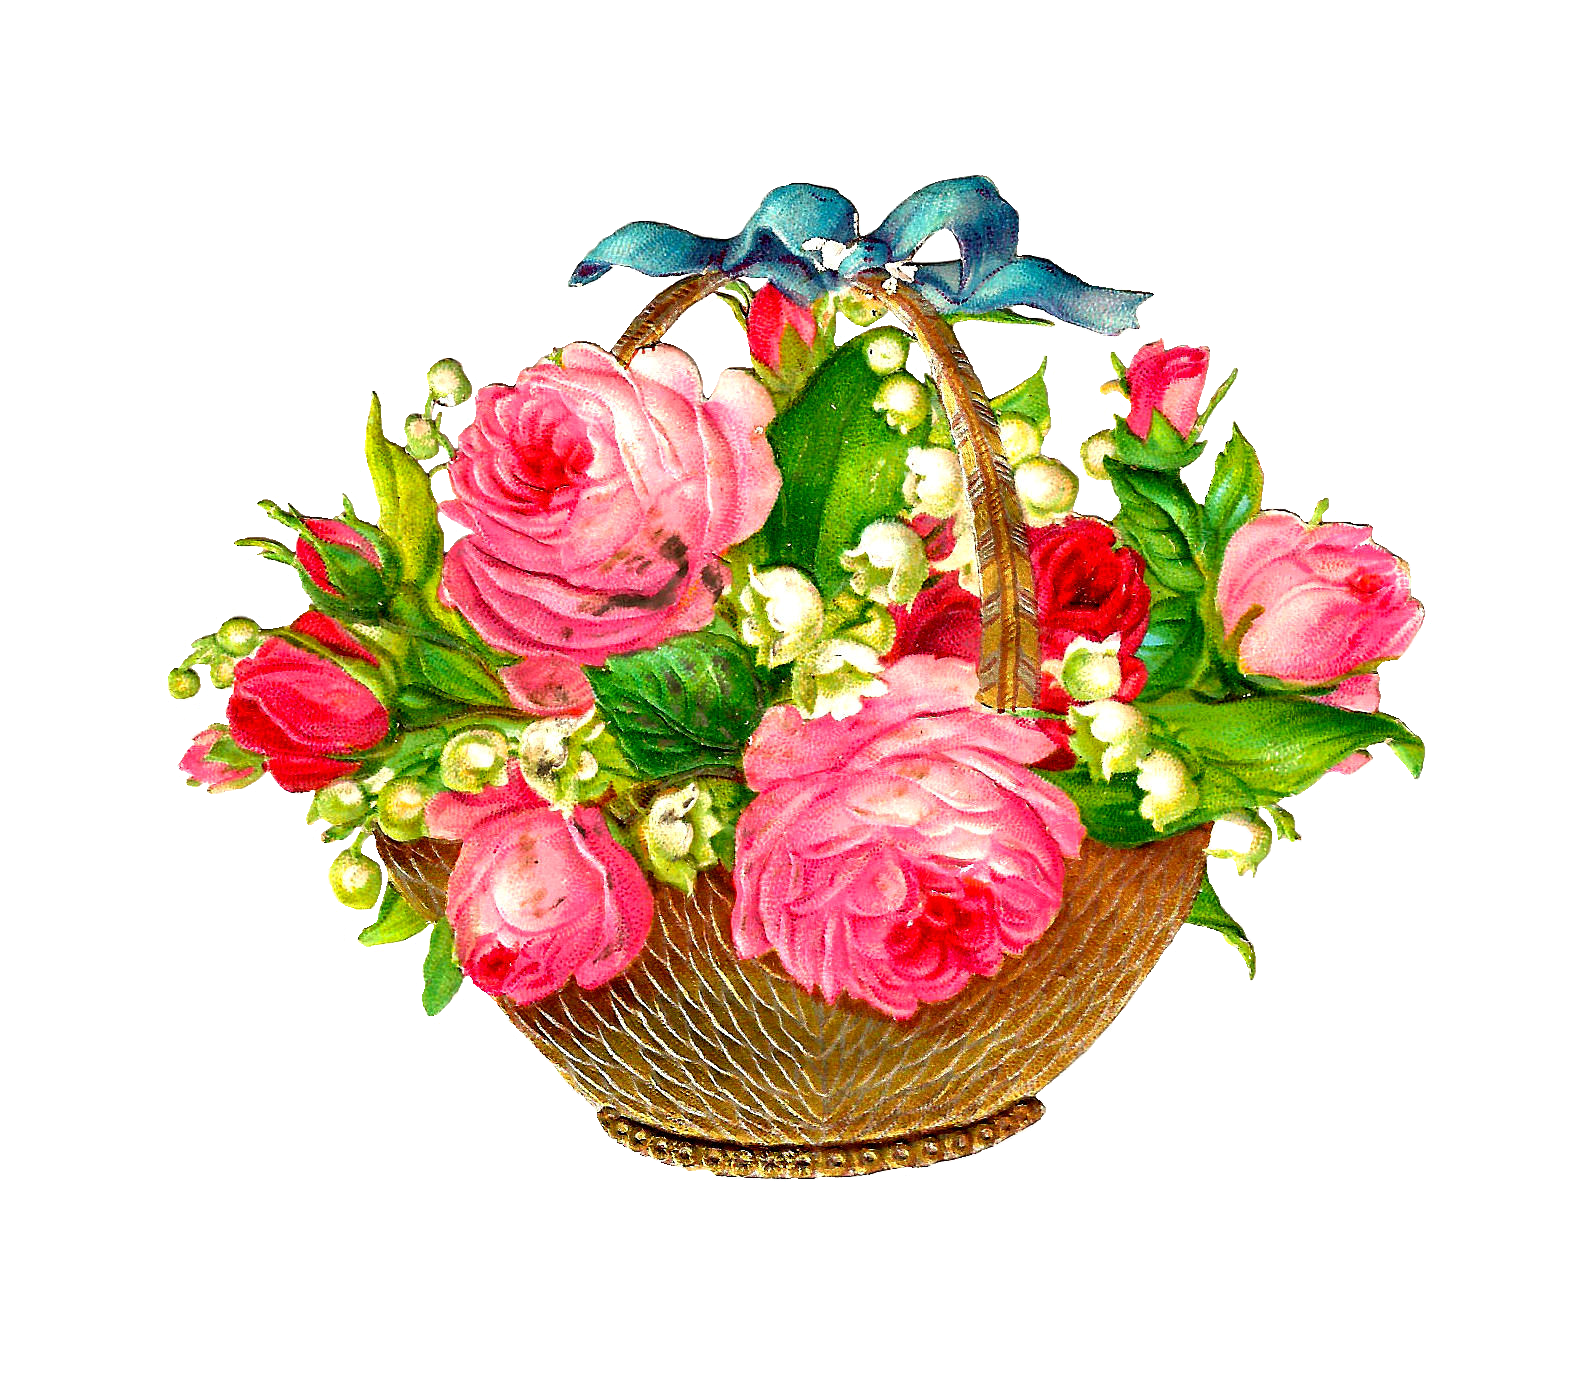 Flower Baskets Photos : Antique images march